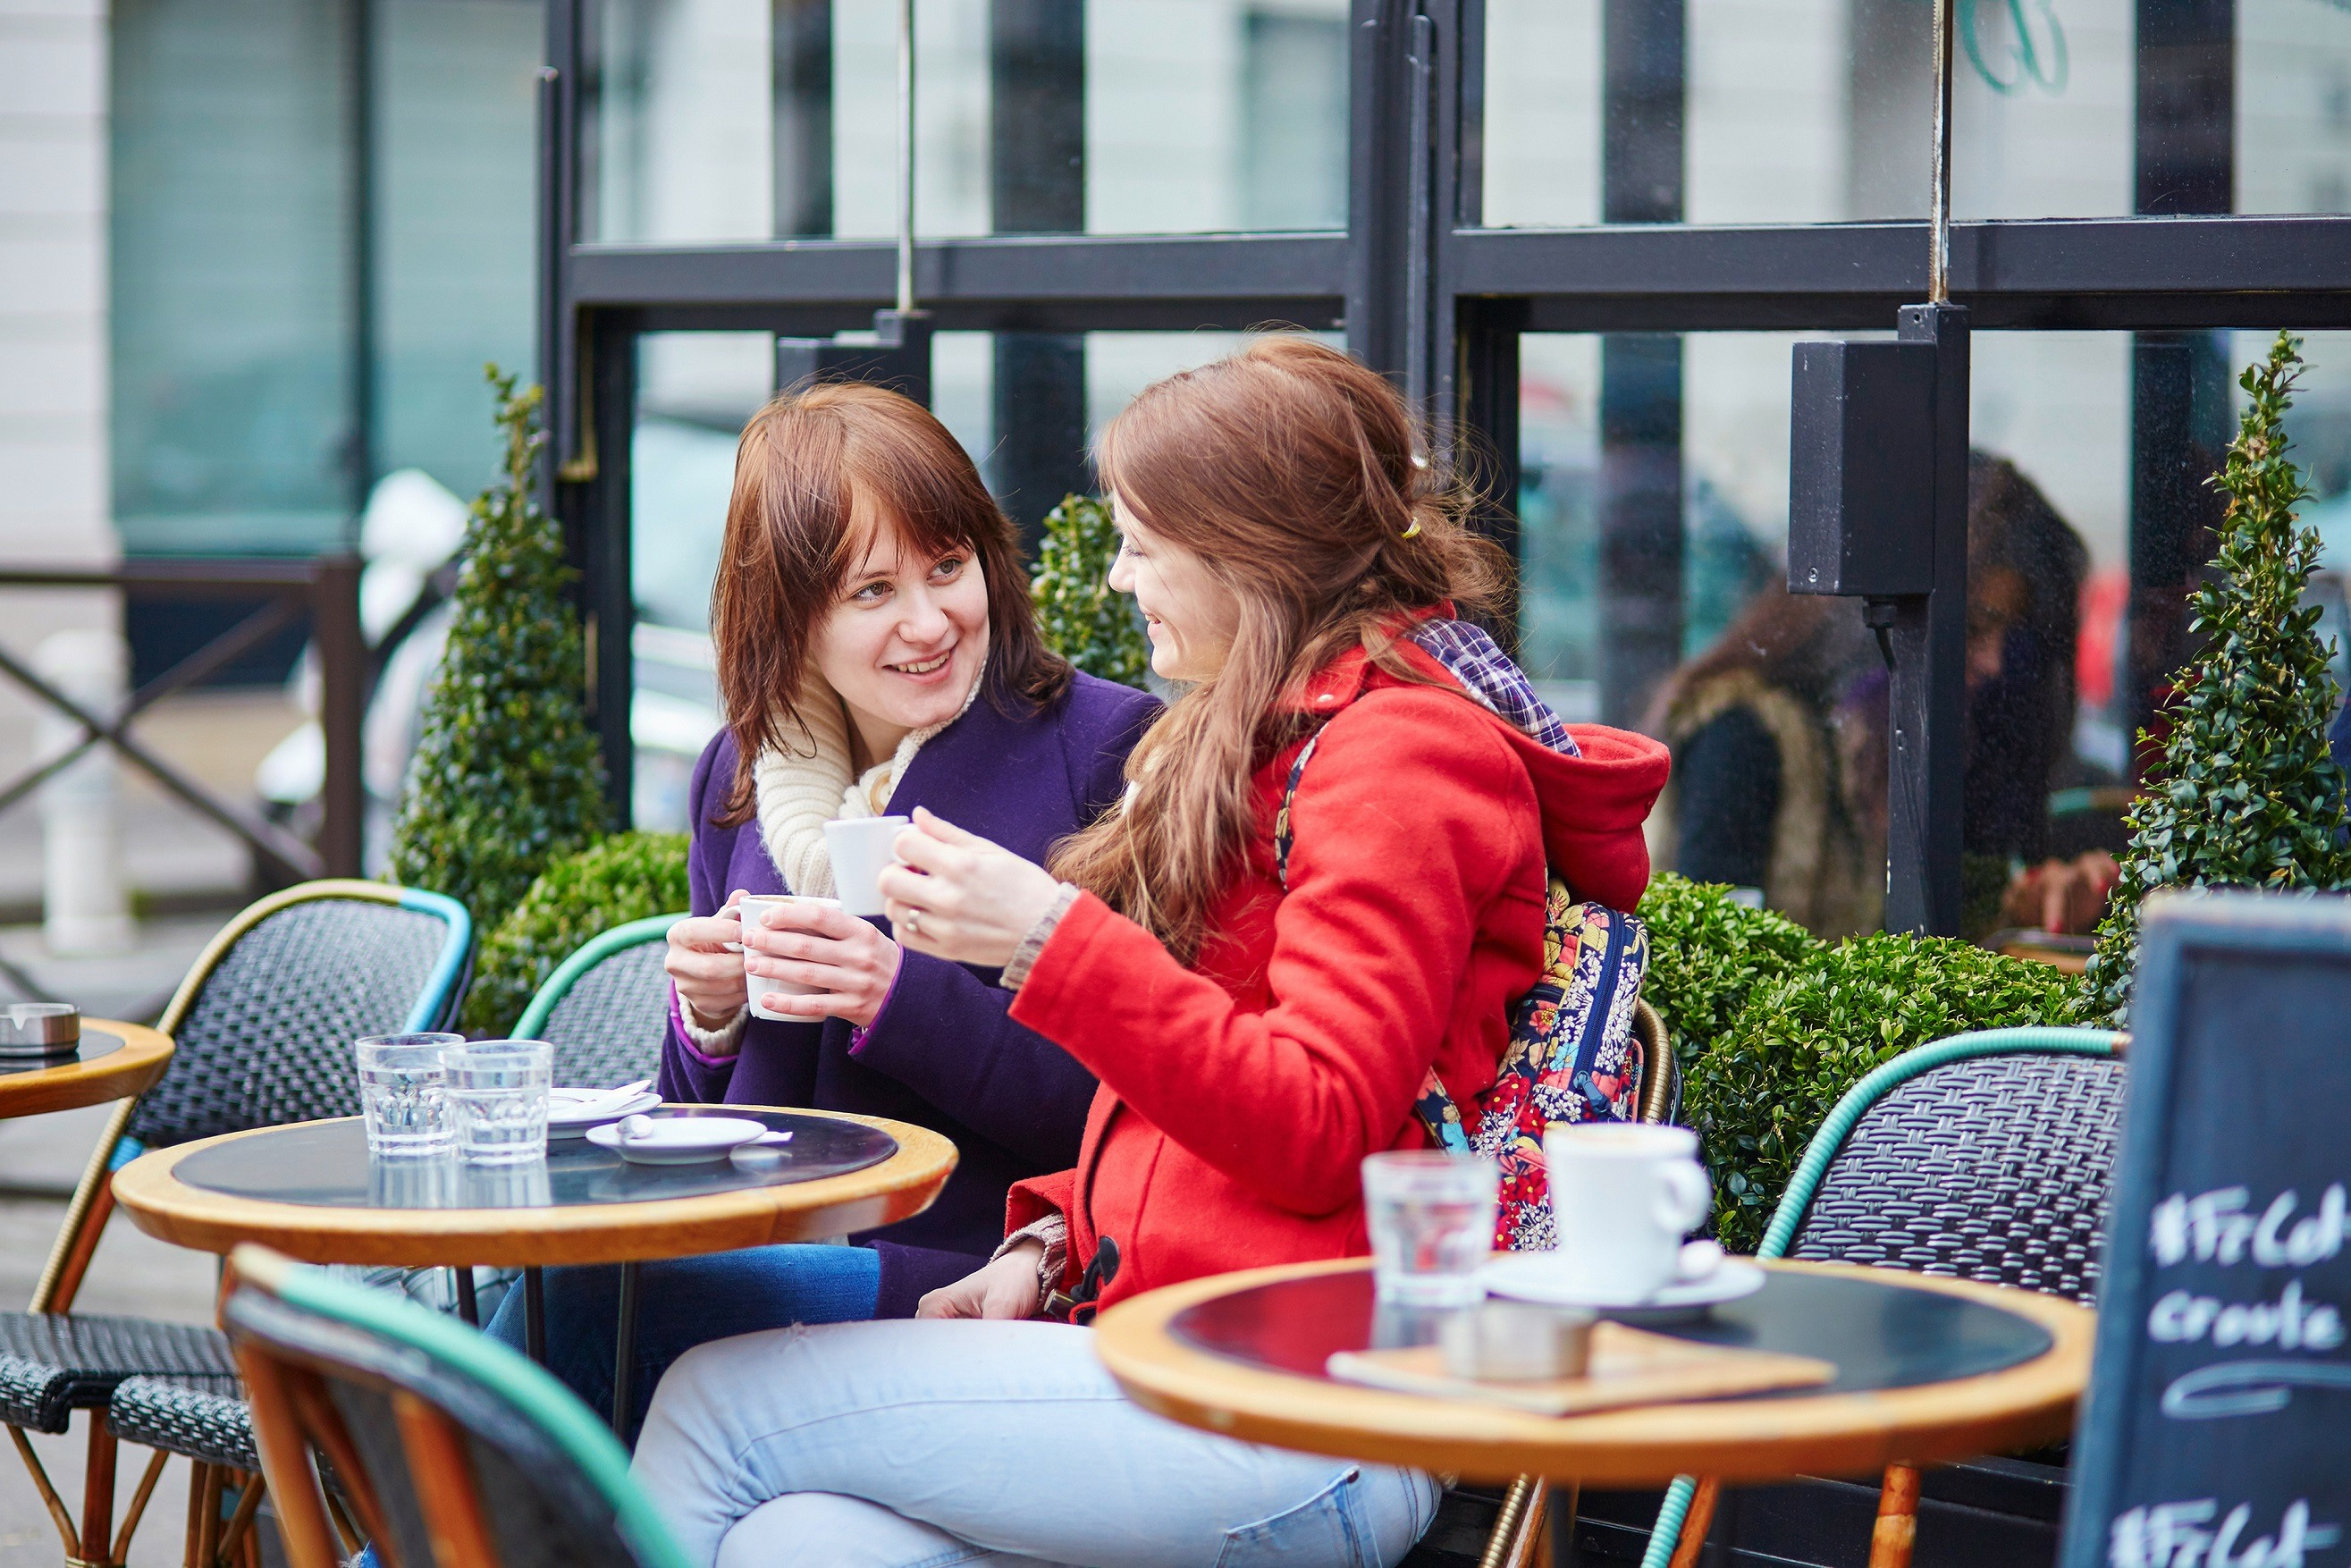 Two women sitting at a cafe table in Paris